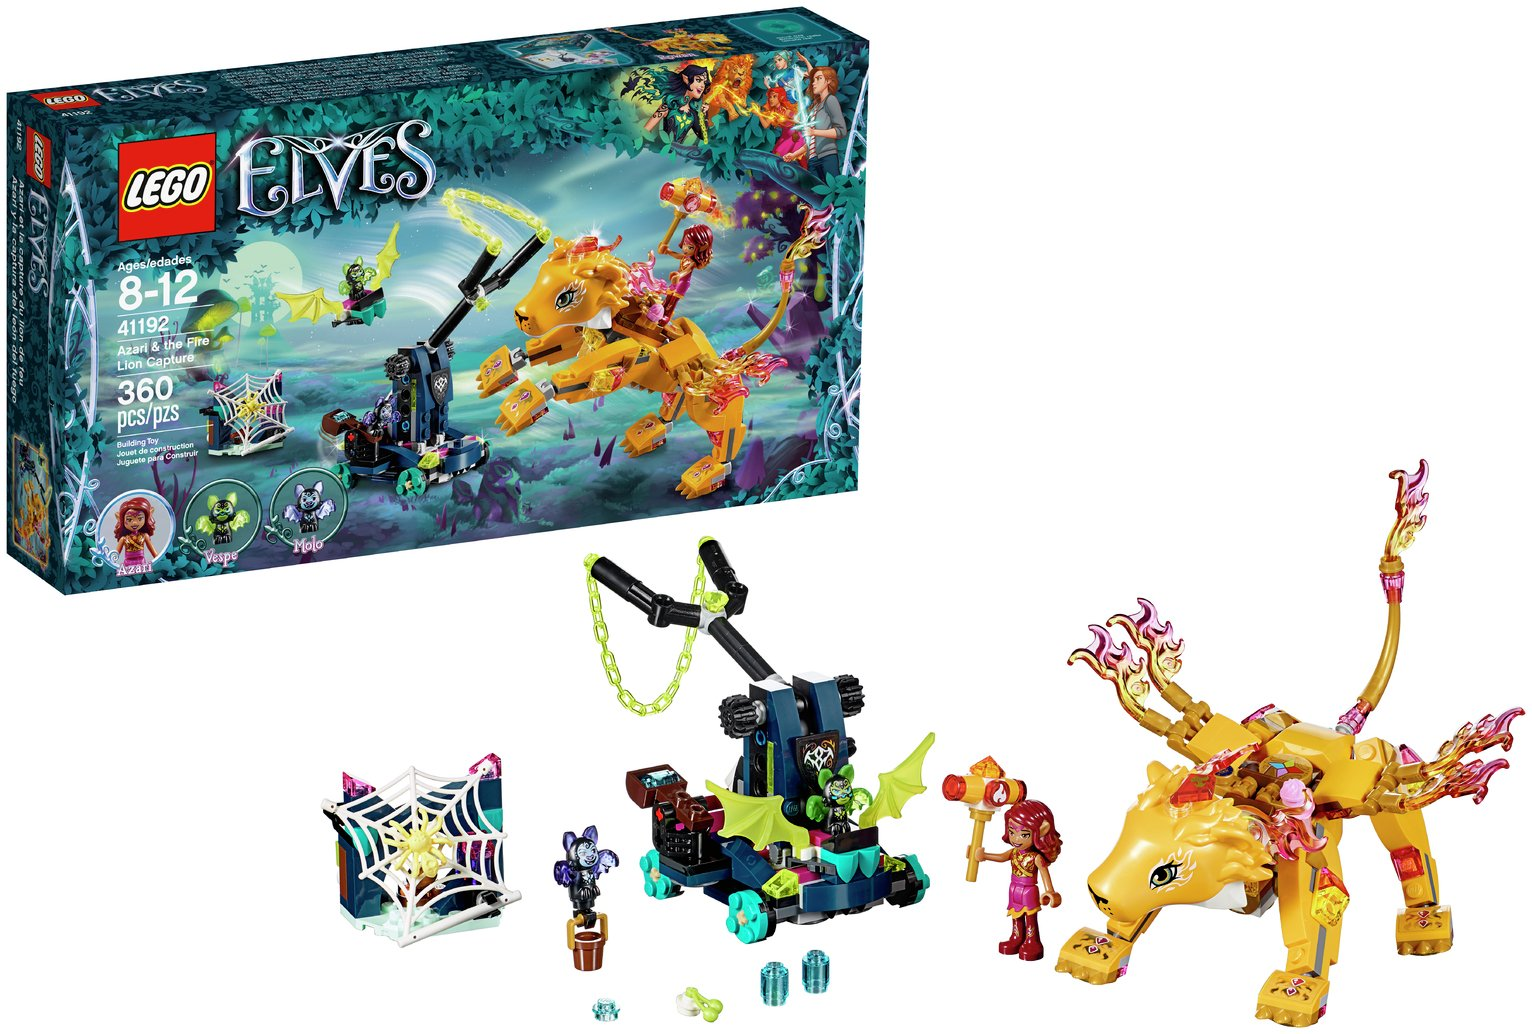 LEGO Elves Azari Fire Lion Capture - 41192